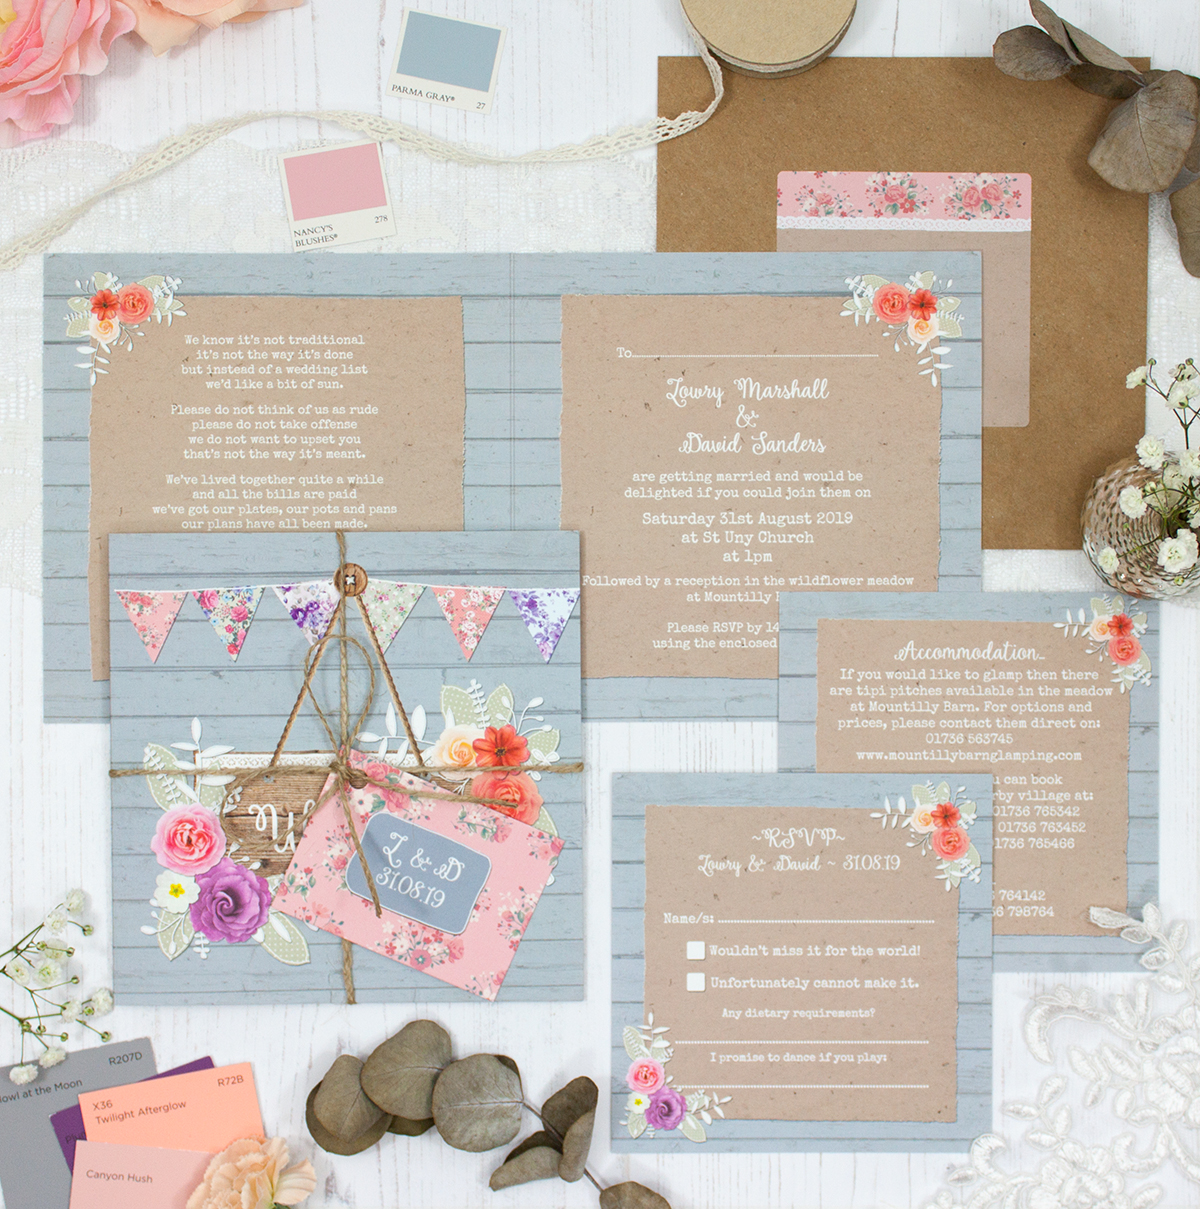 Cornflower Meadow Wedding Invitations - Sarah Wants Stationery